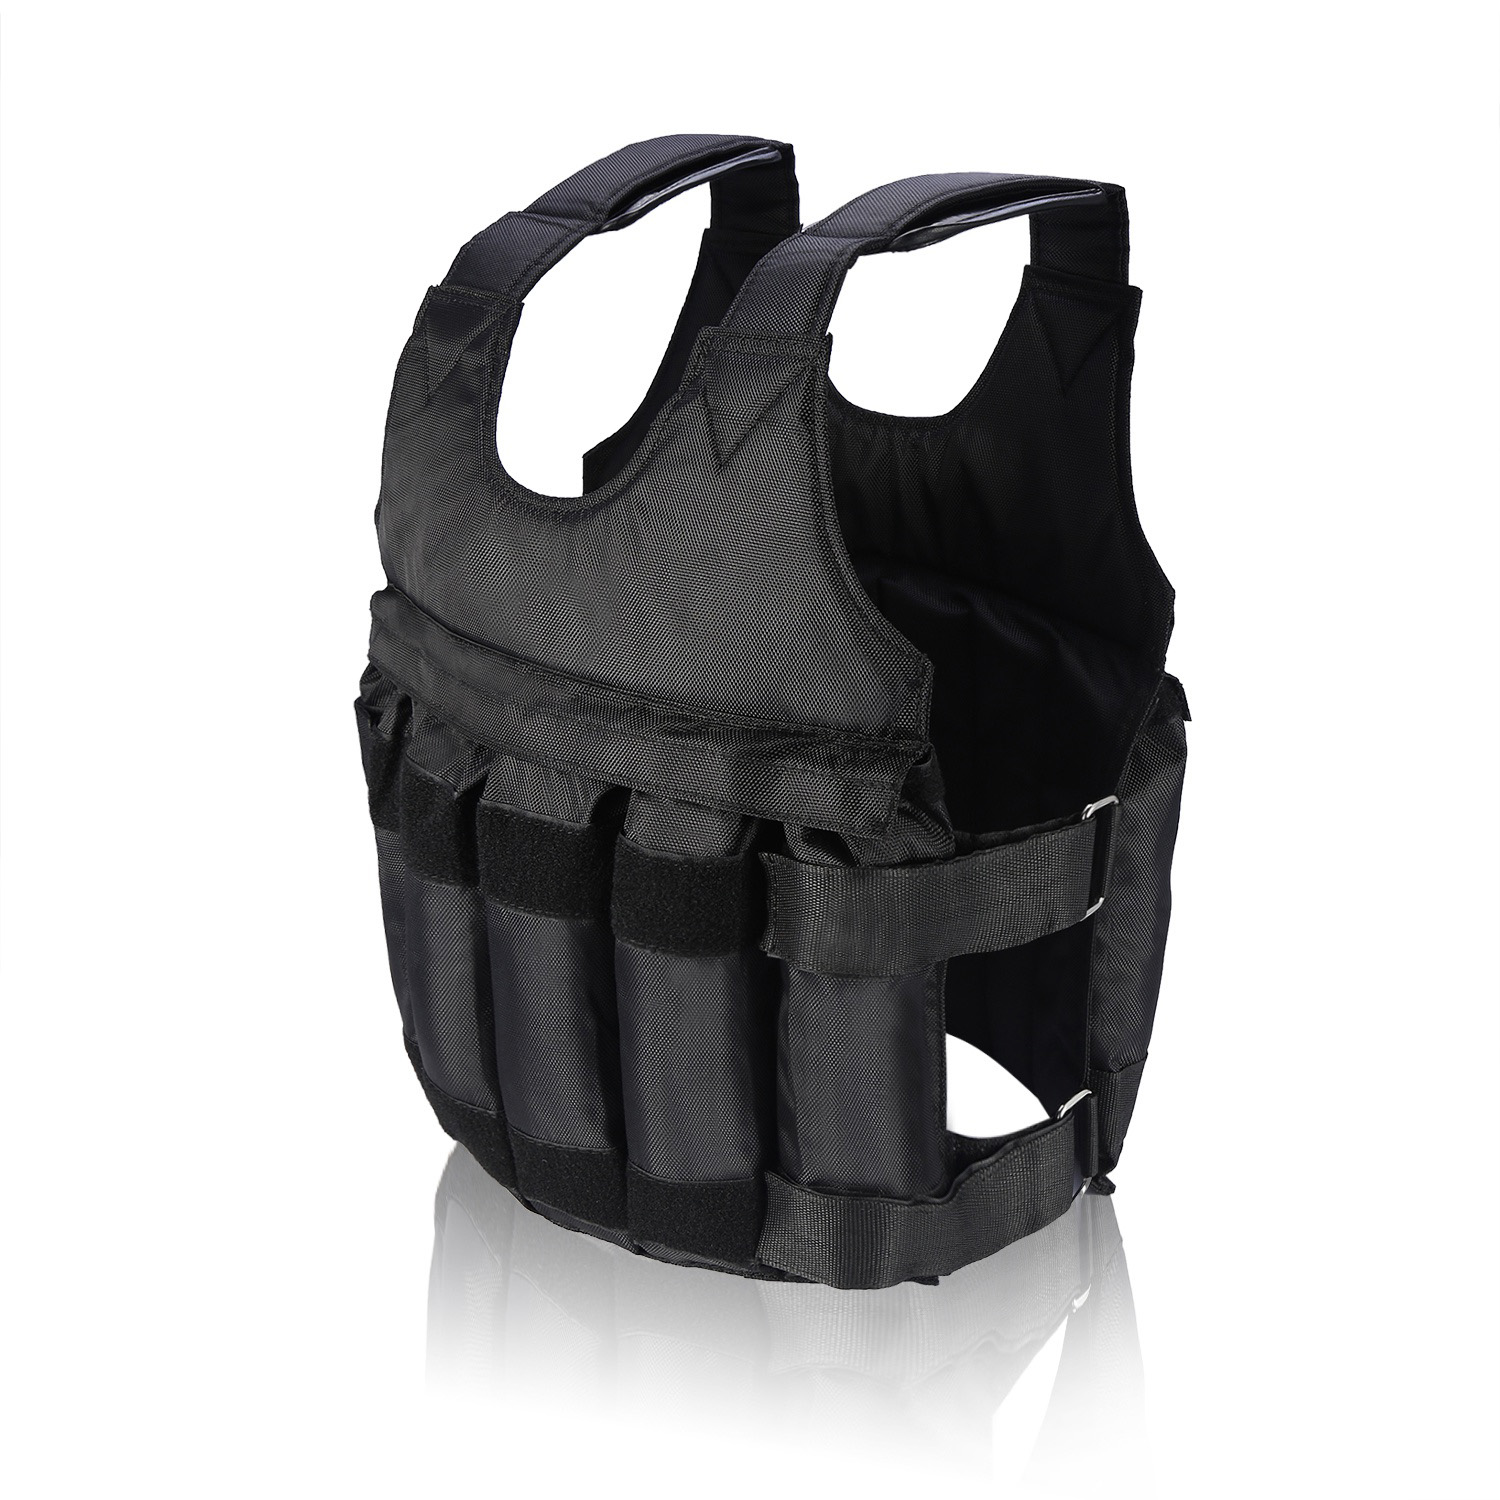 Weighted-Vest-44-110lbs-Weight-Workout-Exercise-Body-Training-Crossfit-Equipment thumbnail 21